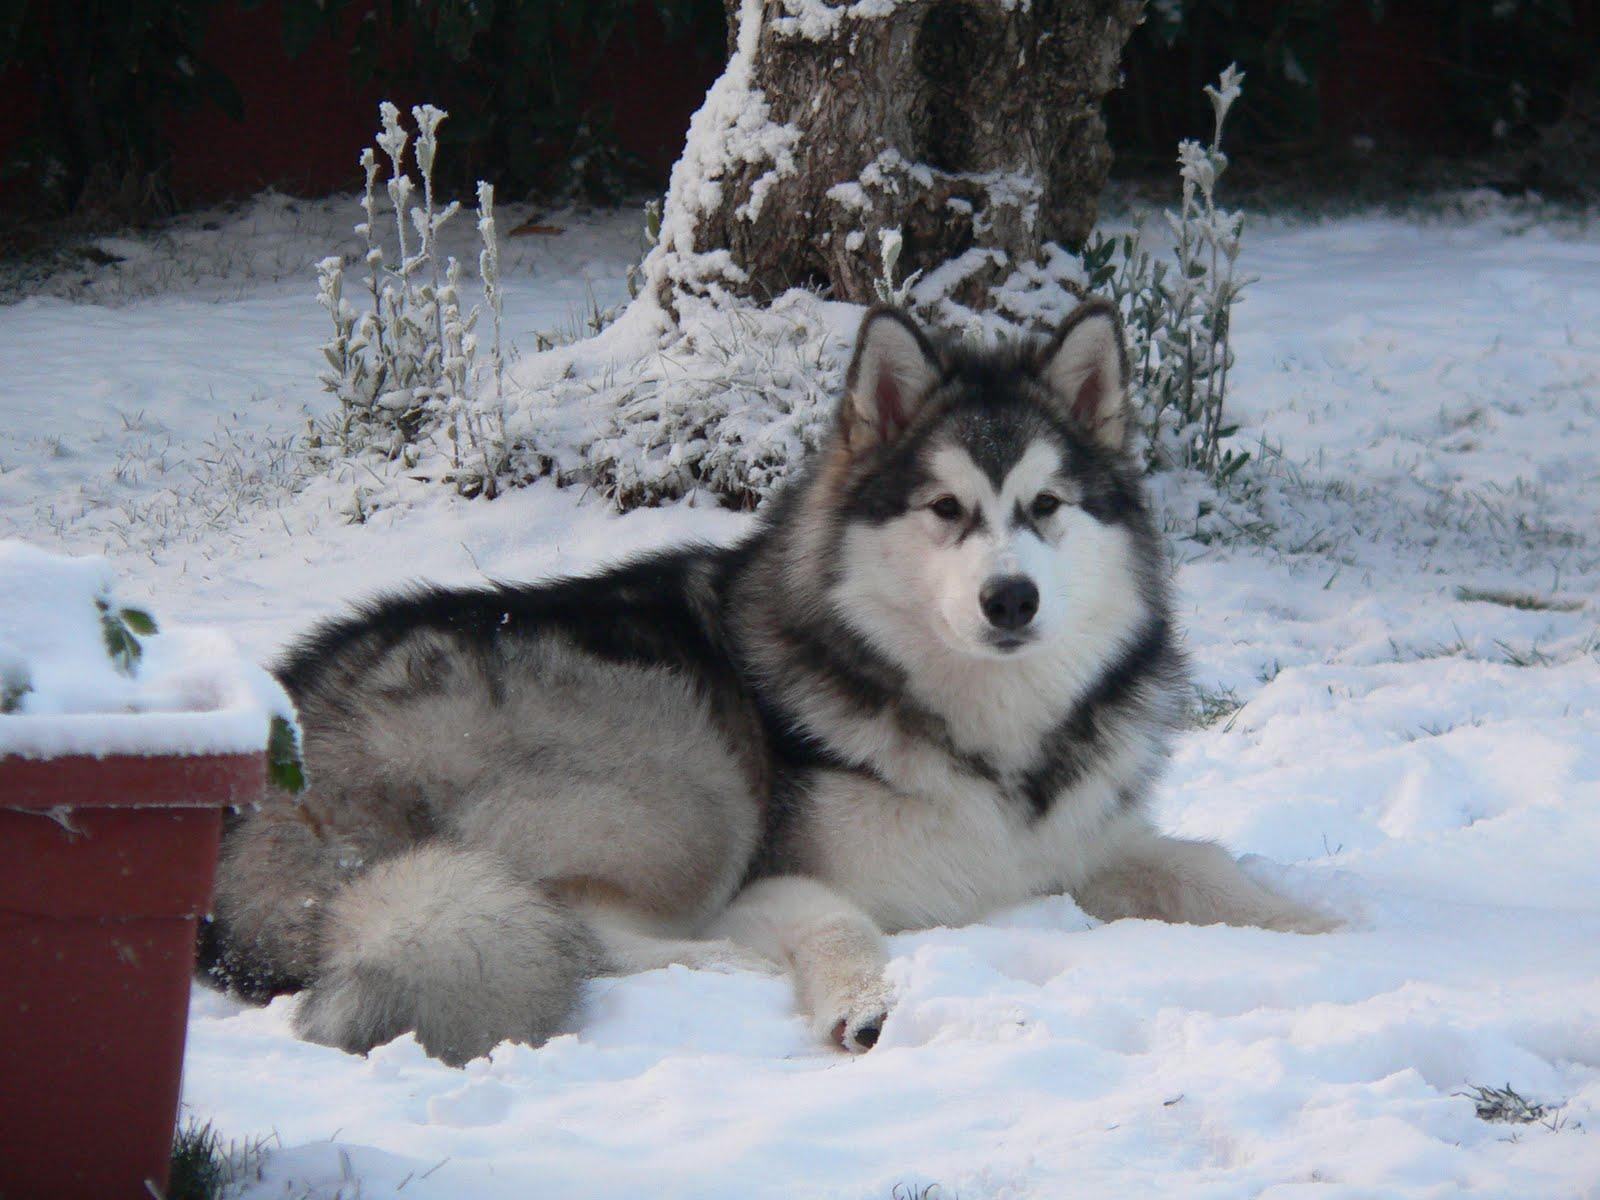 Alaskan Malamute in the winter forest photo and wallpaper ...